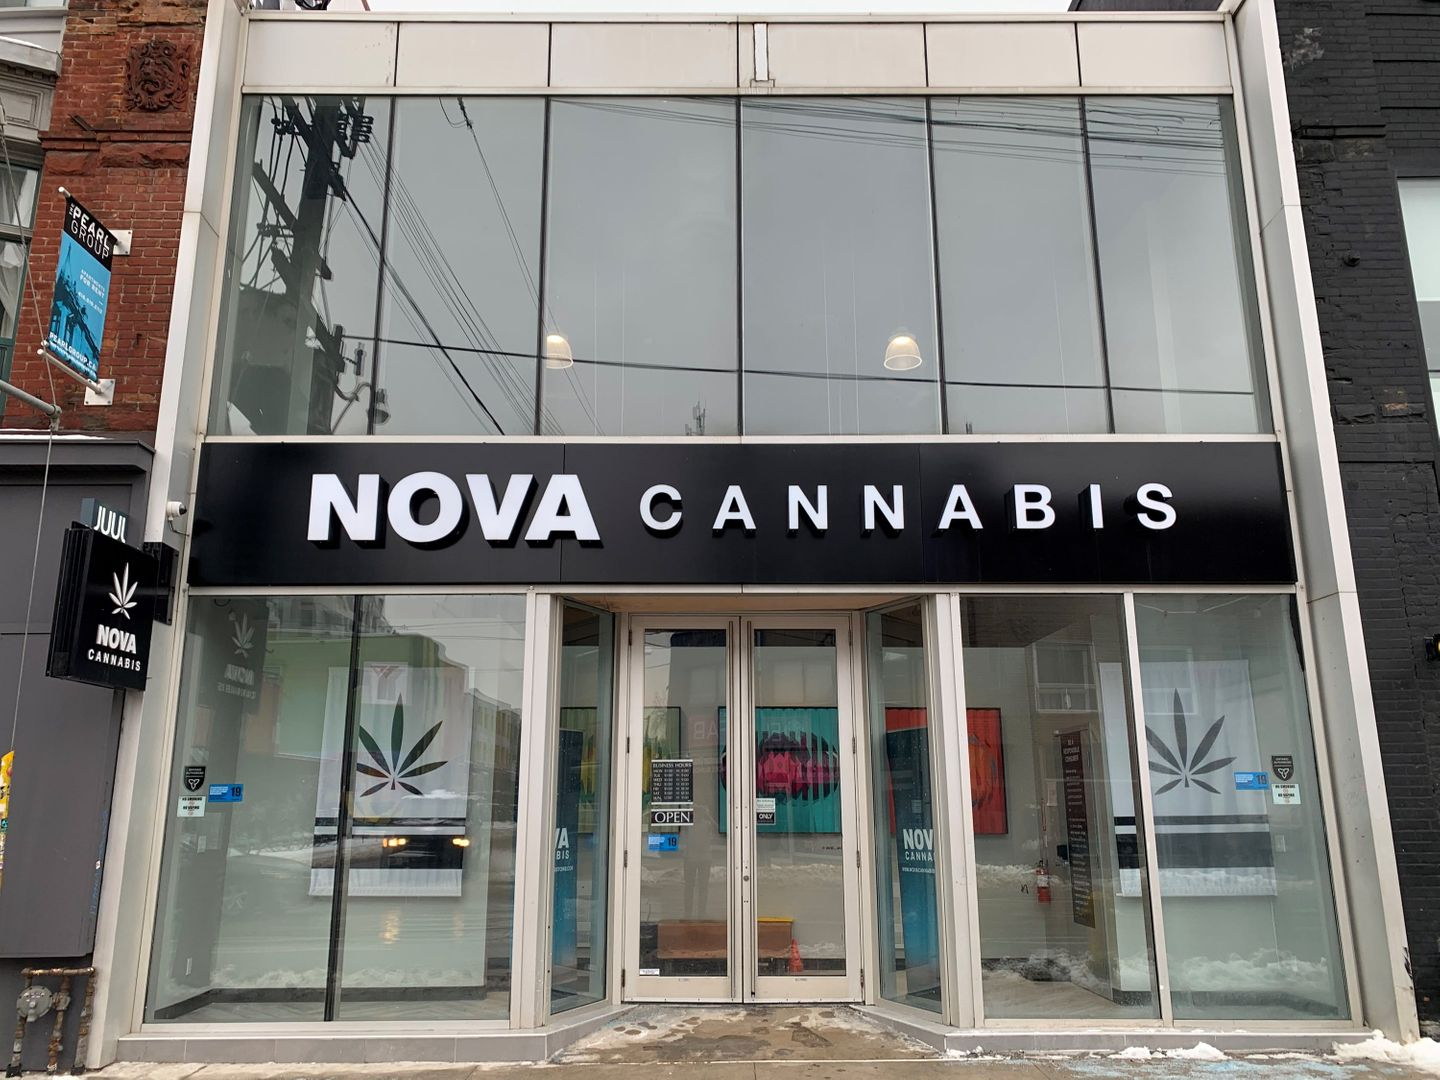 store photos Nova Cannabis - Toronto, Queen Street West